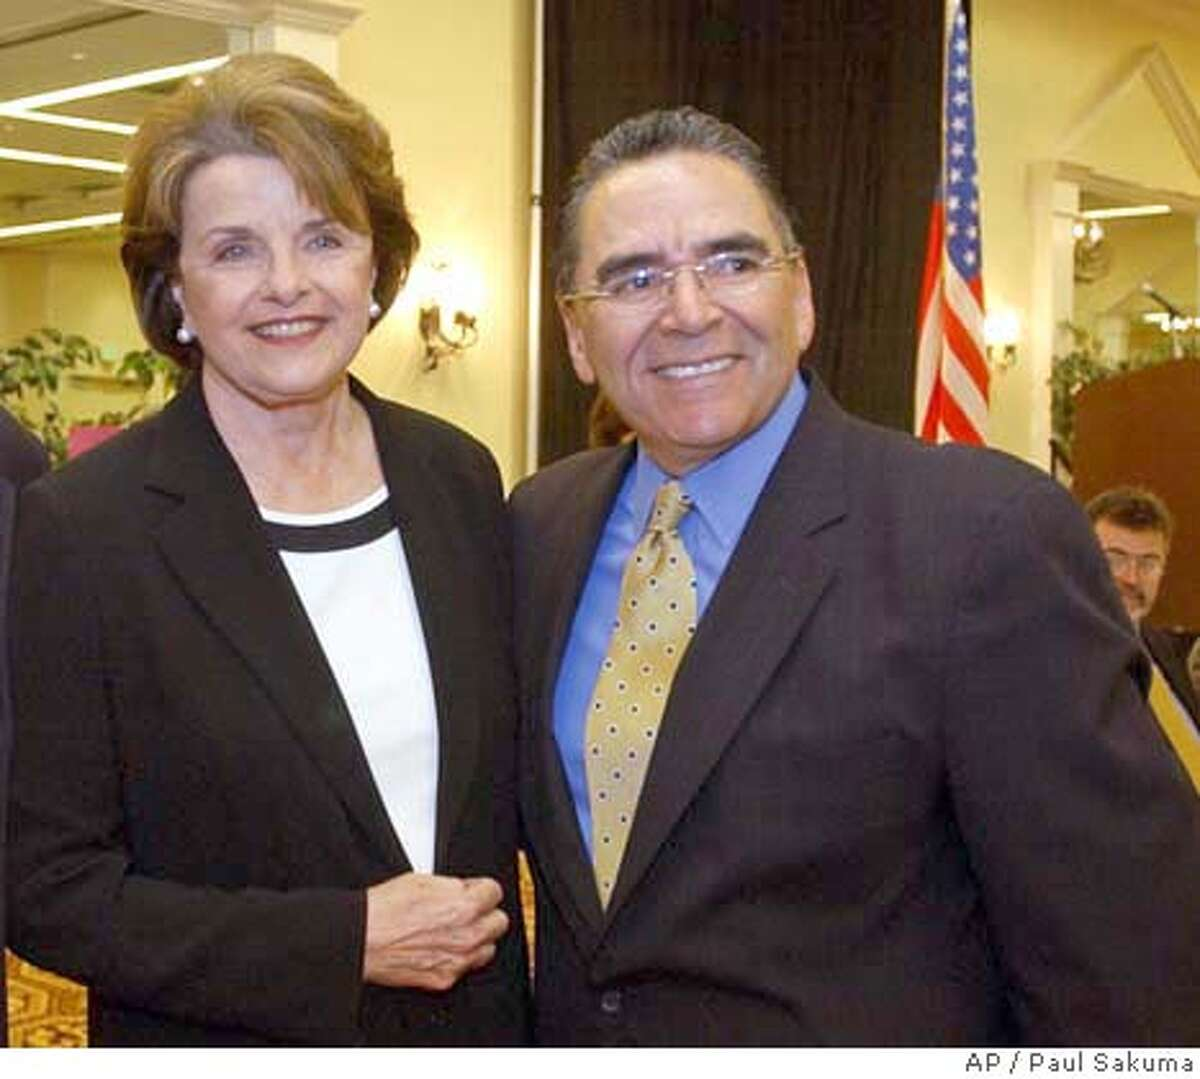 U.S. Sen. Dianne Feinstein, D-Calif., left, smiles with San Jose Mayor Ron Gonzales, right, during a meeting with Silicon Valley business leaders in San Jose, Calif., Wednesday, April 14, 2004 to discuss the flagging local economy, offshore outsourcing of jobs, tax issues and Internet access programs affecting the technology industry. Feinstein also talked about the latest developments in Iraq, the Sept. 11 Commission hearings and the growing federal deficit. (AP Photo/Paul Sakuma) San Jose Mayor Ron Gonzales is urging Washington to keep the BART project on track. Sen. Dianne Feinstein says only $30 million is expected to be spent to remove trees killed by bark beetles, though Congress has approved $120 million. Sen. Dianne Feinstein helped organize the bipartisan call by senators, which mirrors a letter sent by House members in April.